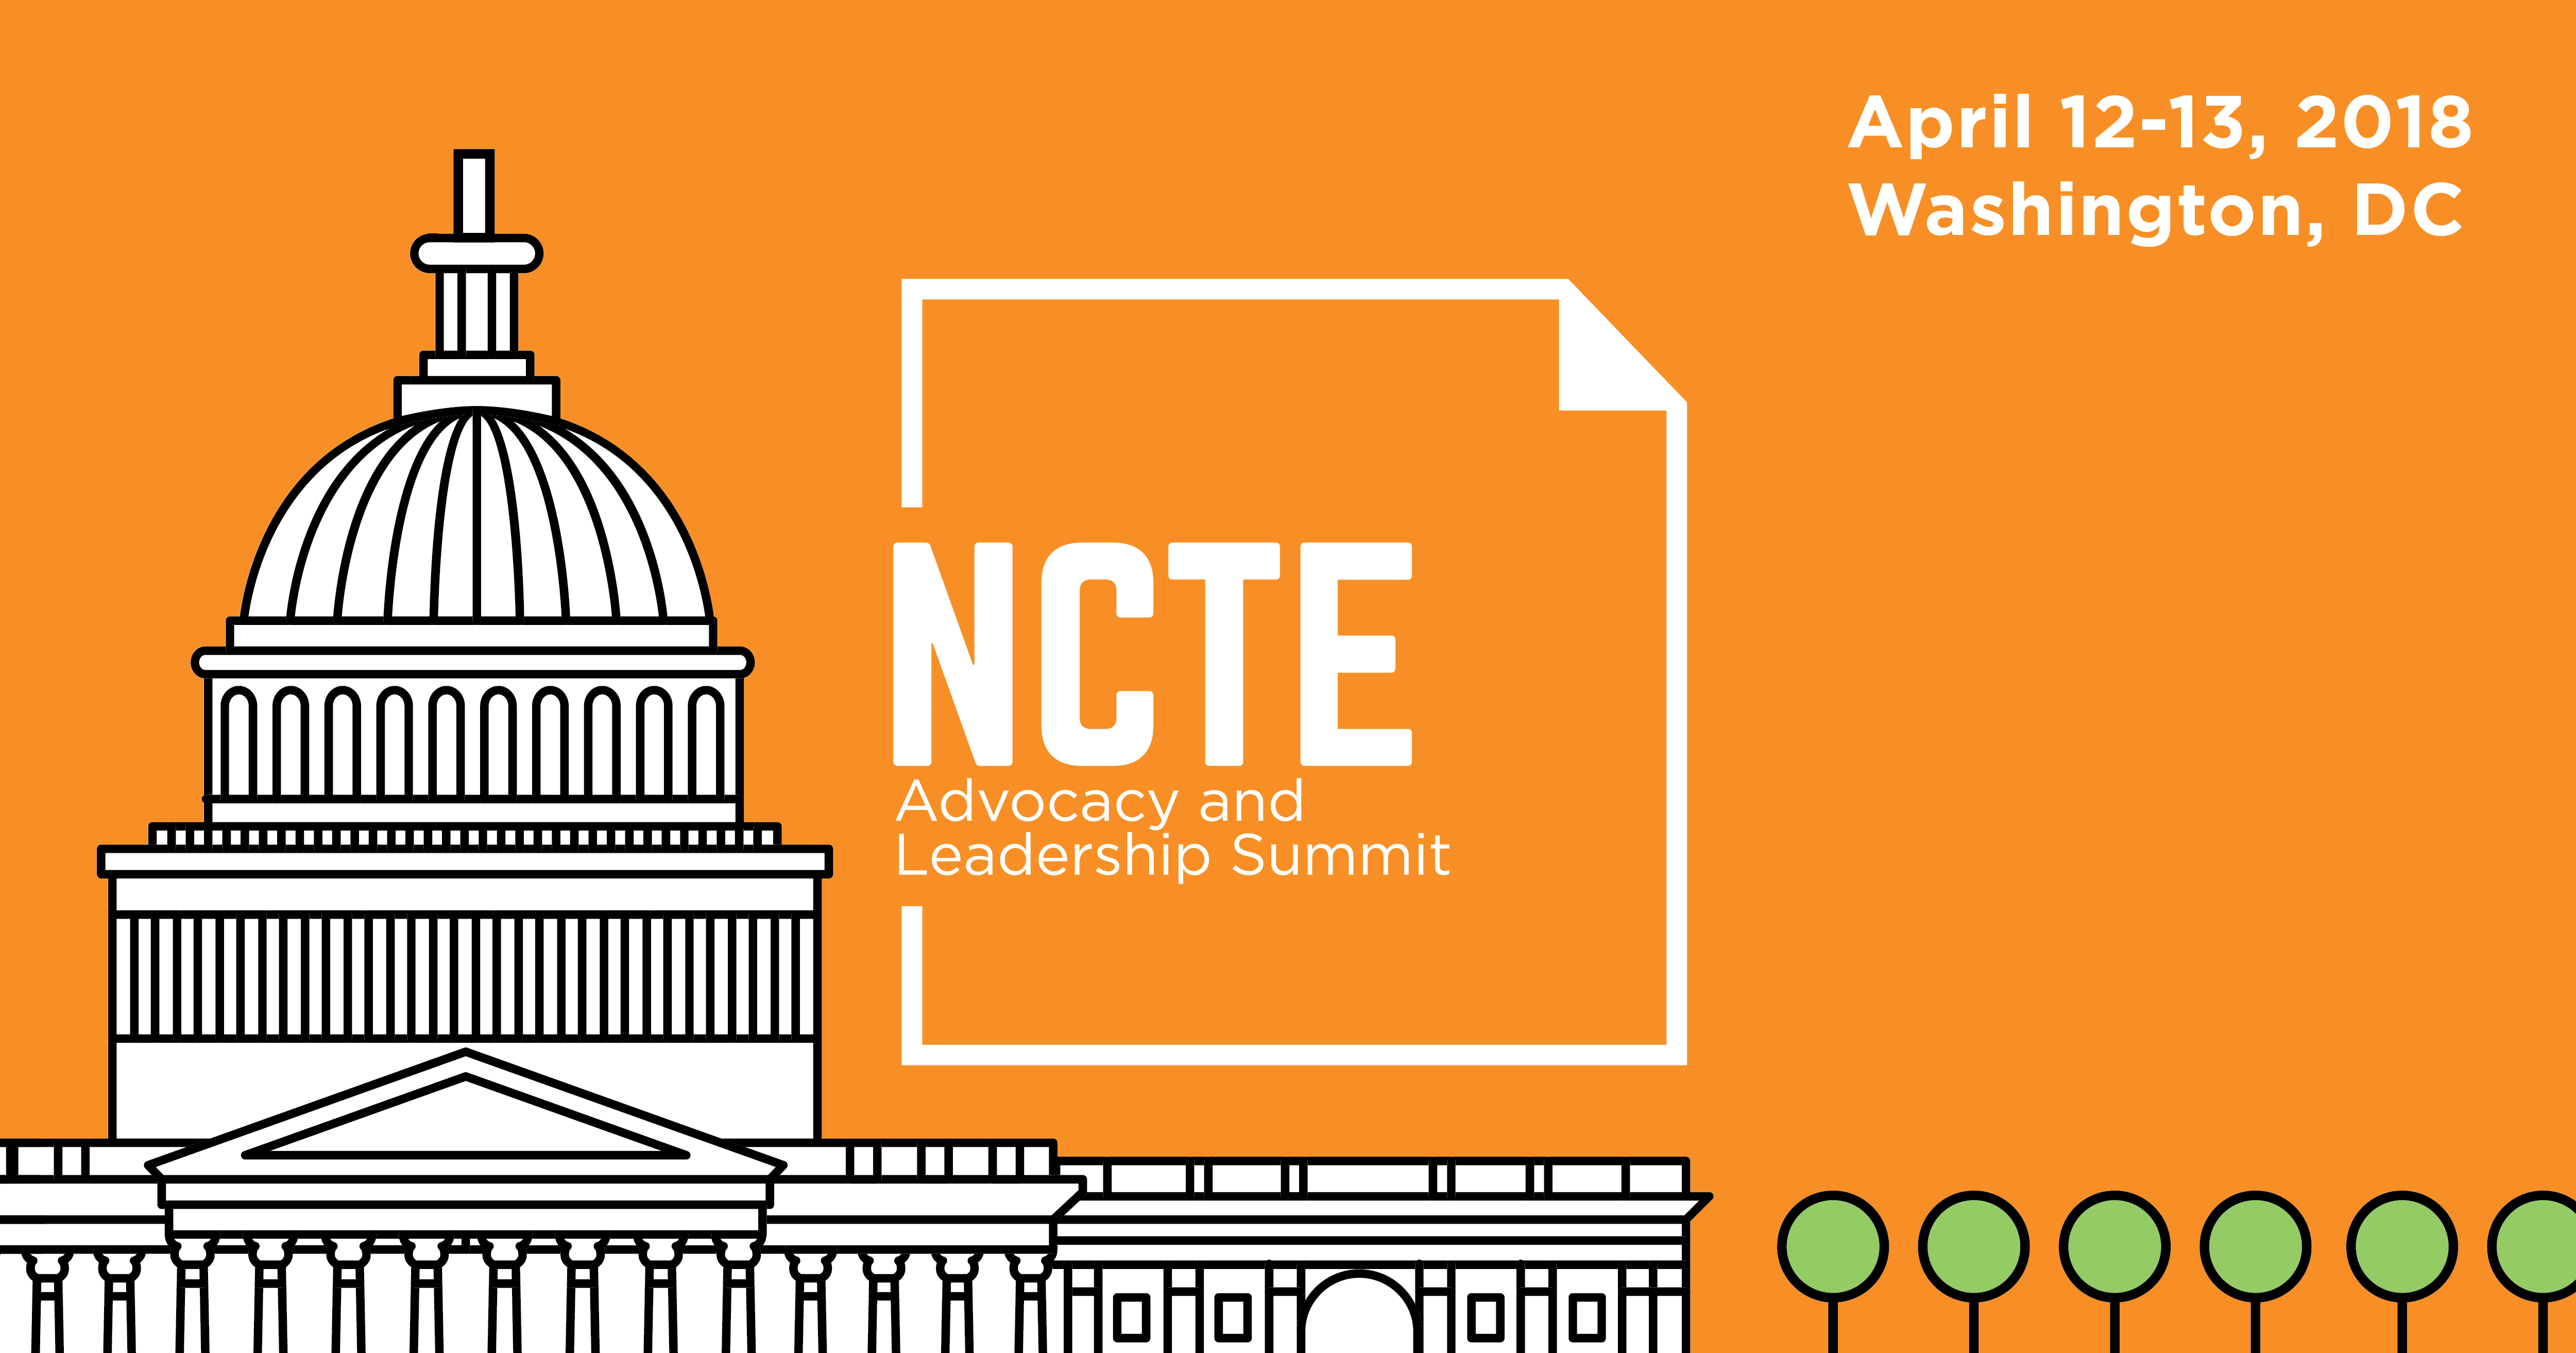 Speakers clipart advocacy. Ncte and leadership summit